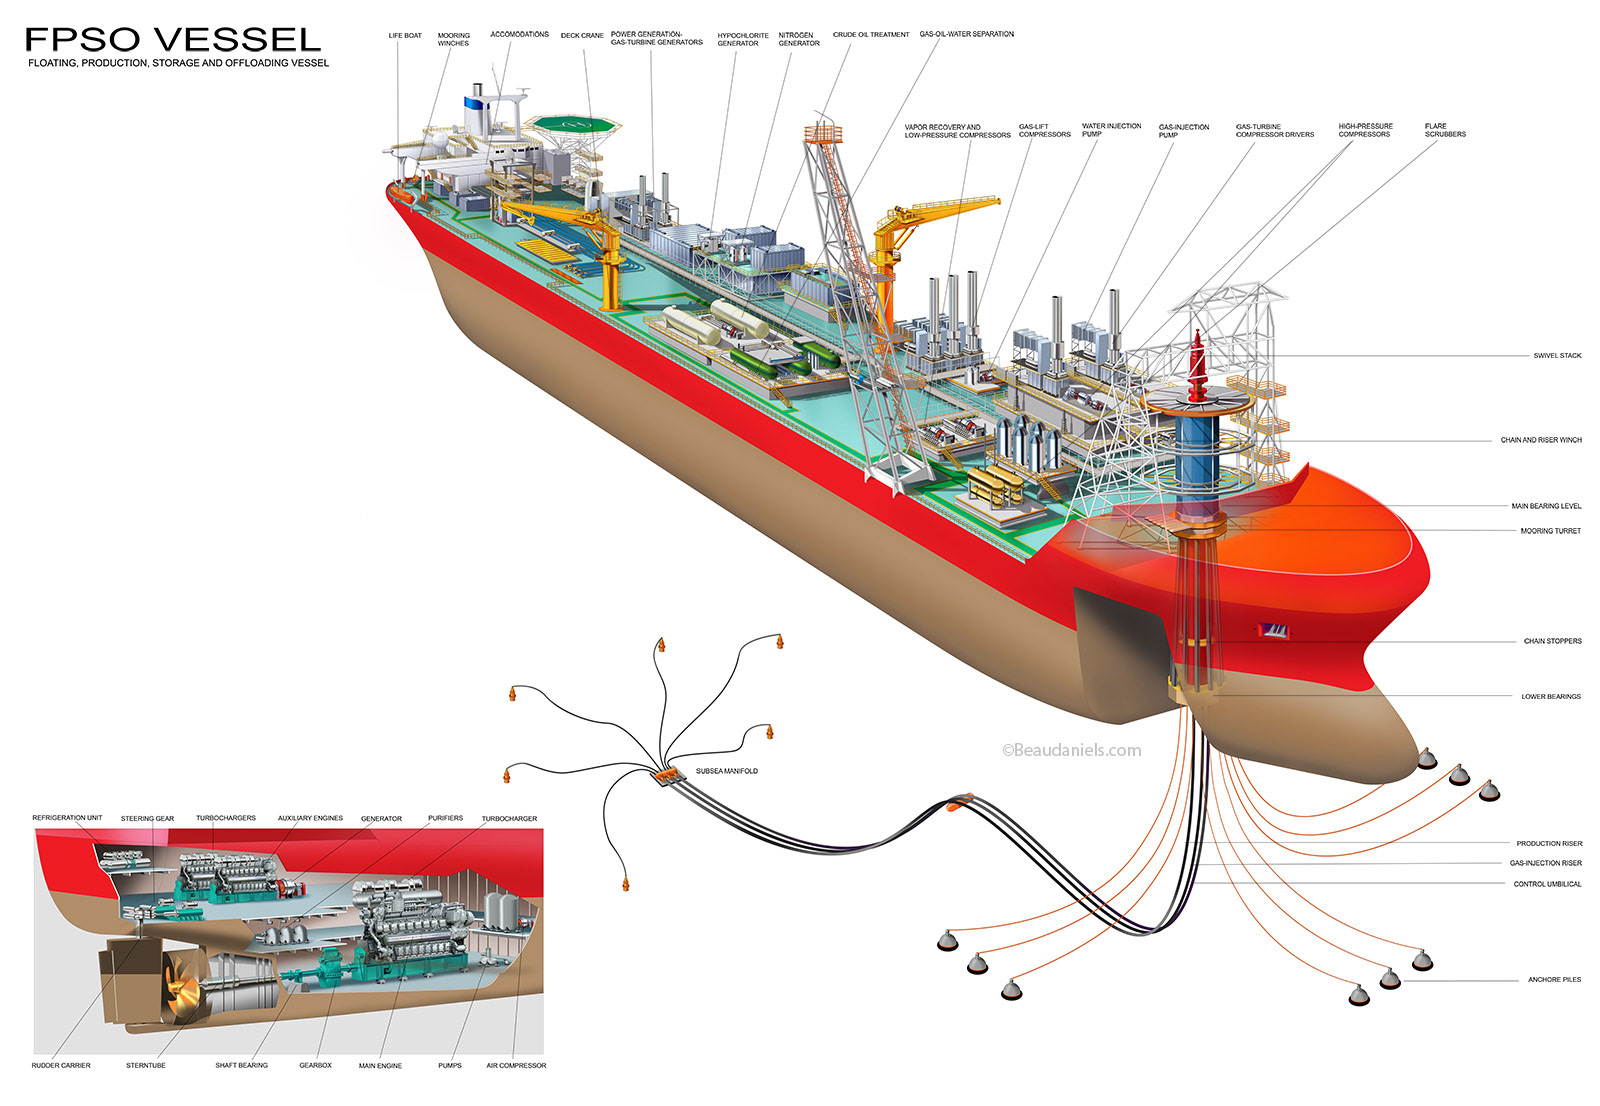 Good Home Layout Design Technical Illustration Beau And Alan Daniels Exxon